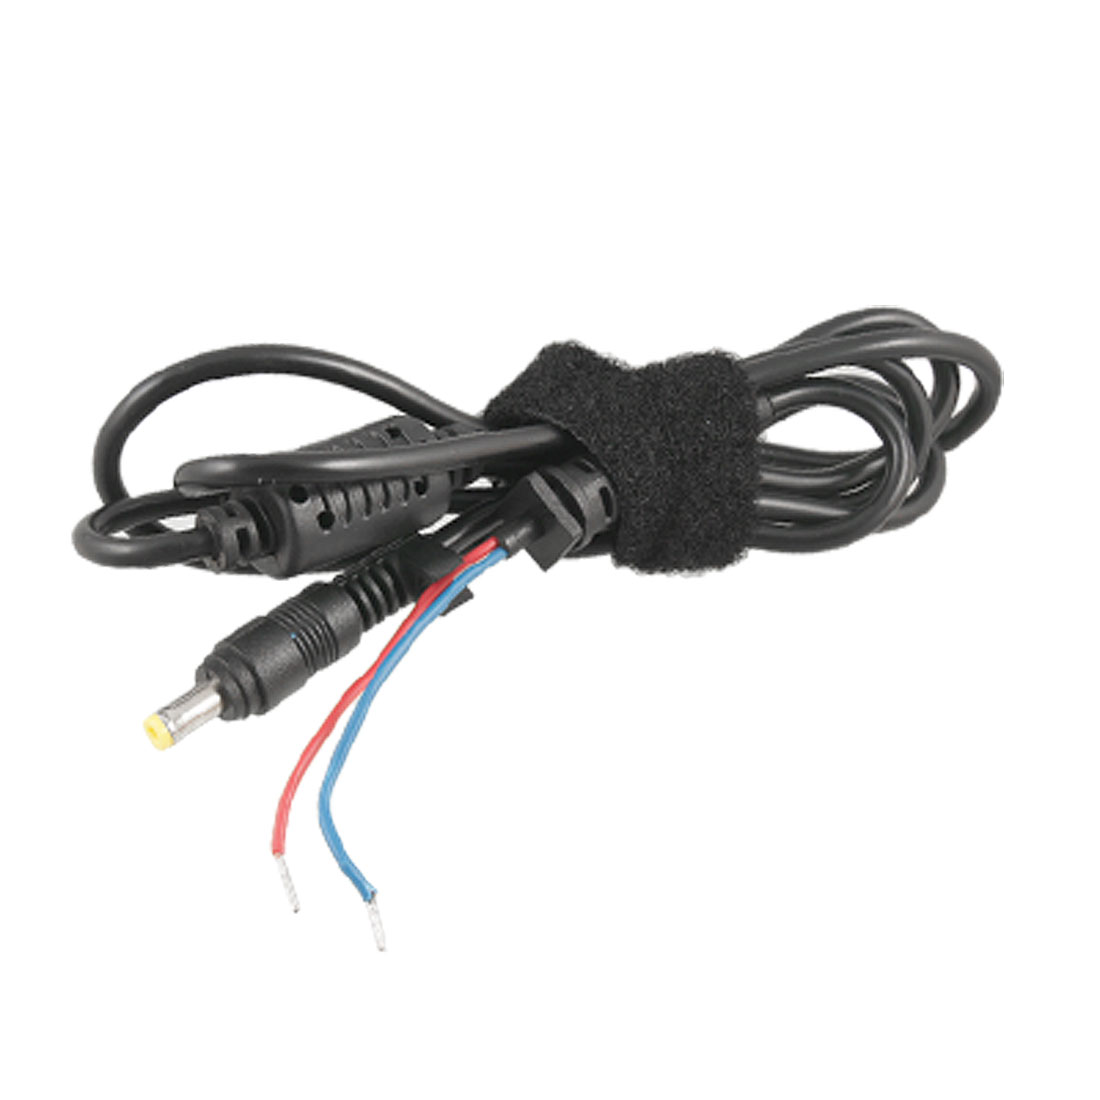 PL5516 4.7 x 1.65mm Laptop DC Power Cable for HP ZE1000